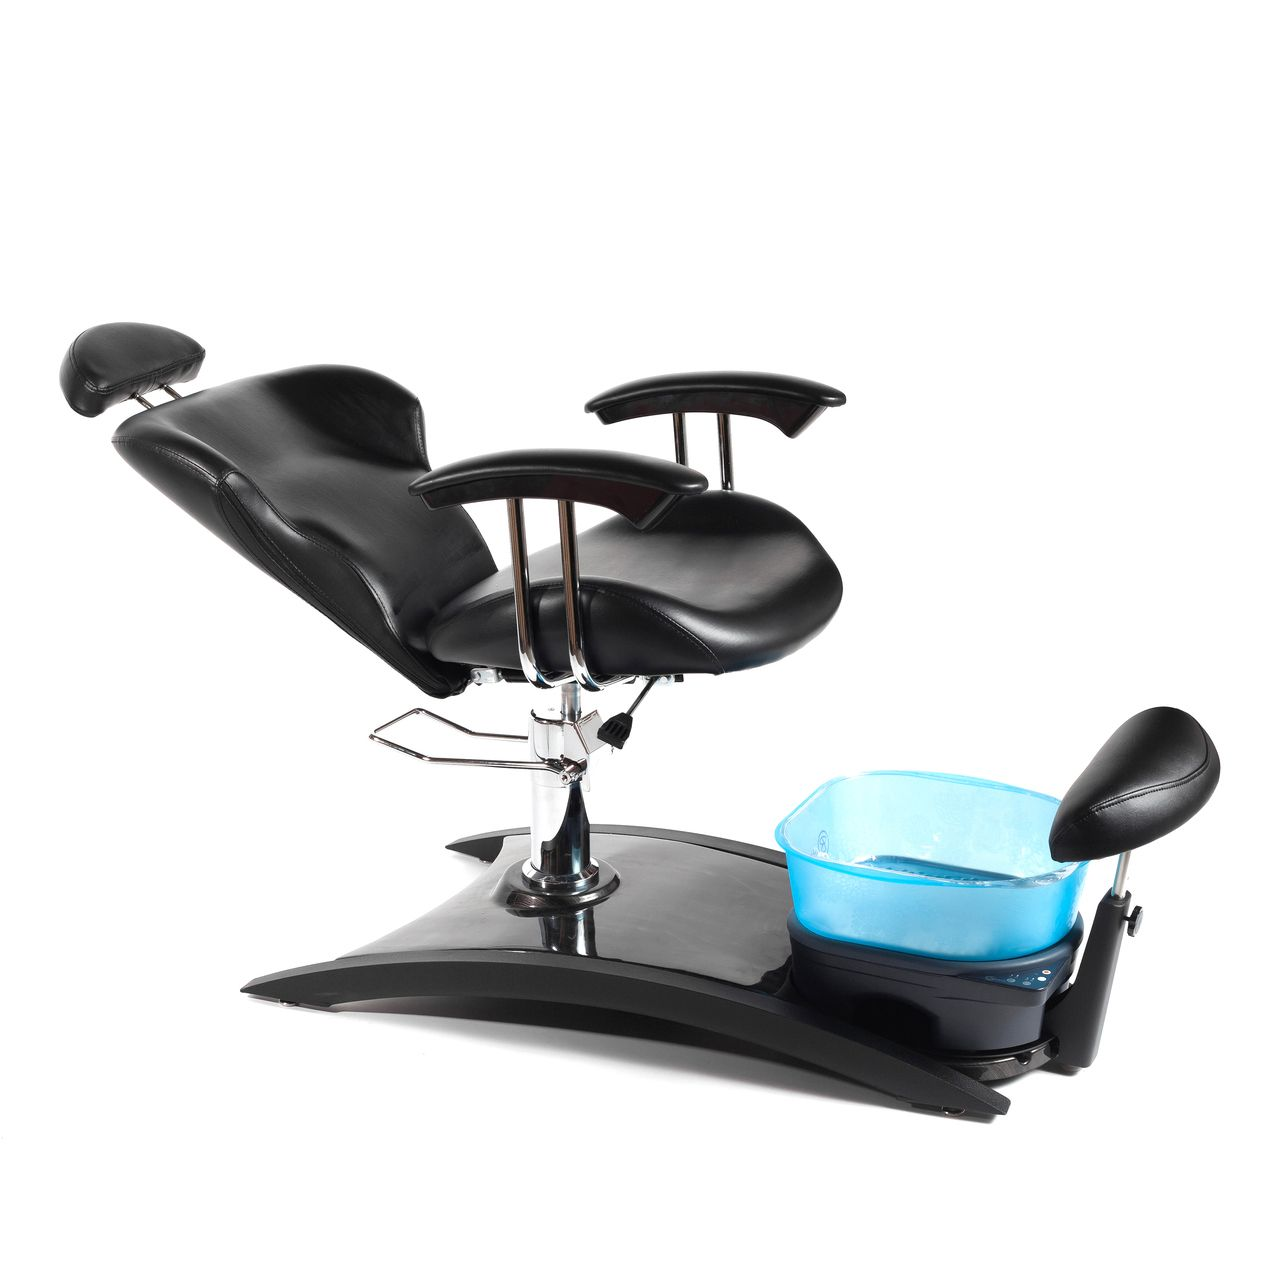 on SALE with FREE Shipping | Pipe Free Pedi Chair Indulgence in Champagne